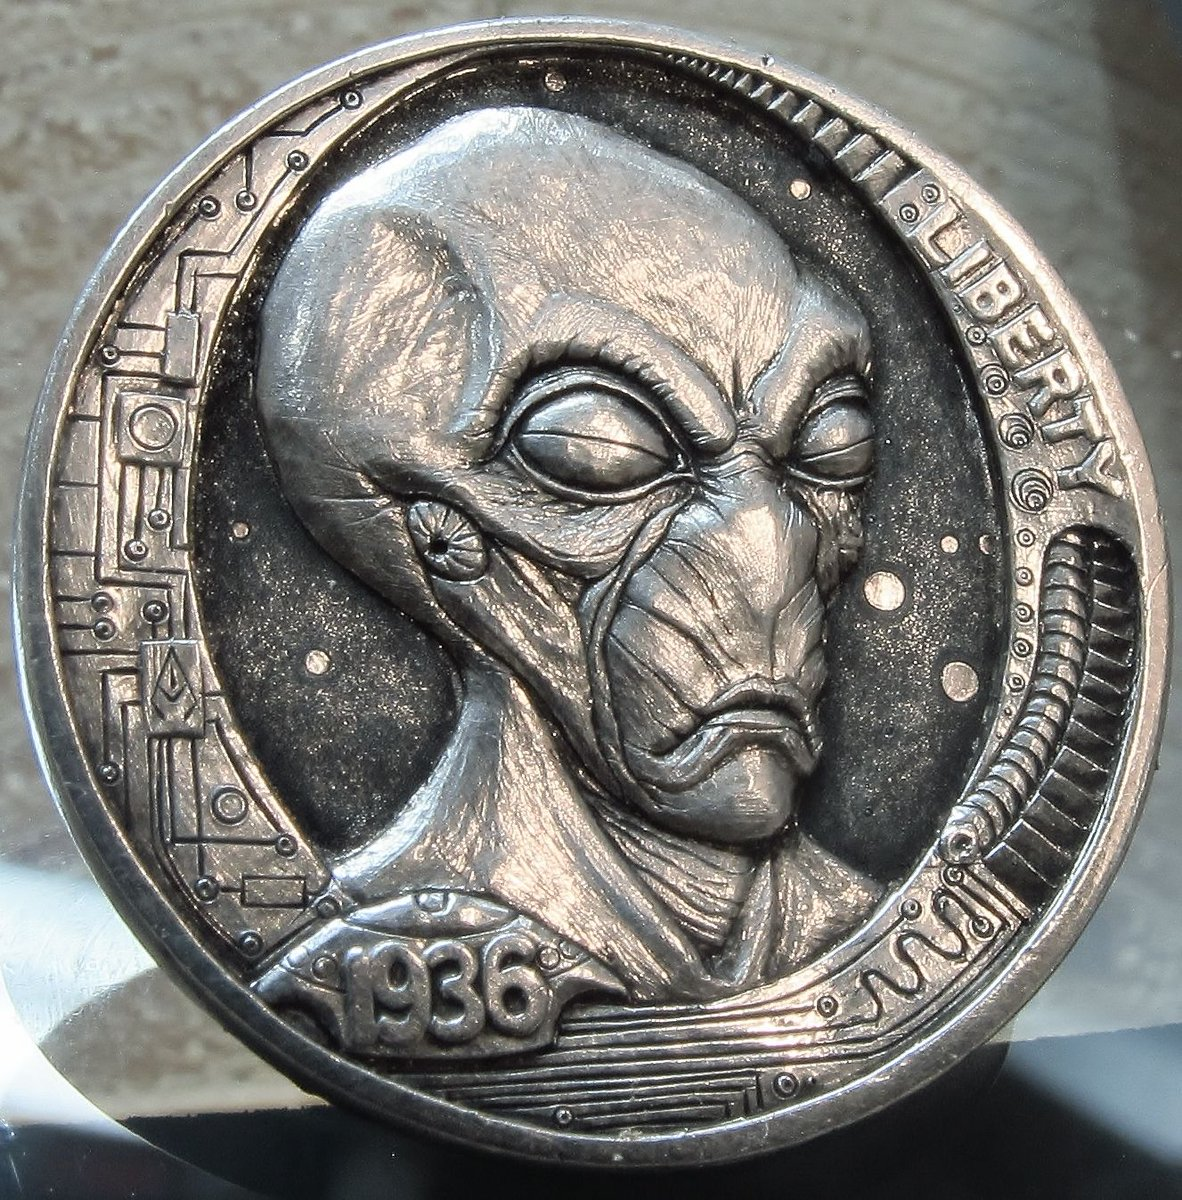 February 11= #ExtraterrestrialCultureDay #Extraterrestrial #Alien #TerrorTuesday  #Starman Get ready. Company's coming. #HoboNickel #CoinCarvings by #JoshRanger #AlienLife #Spaceman #SpaceTravel #AlienNationpic.twitter.com/BPSywO4JAT